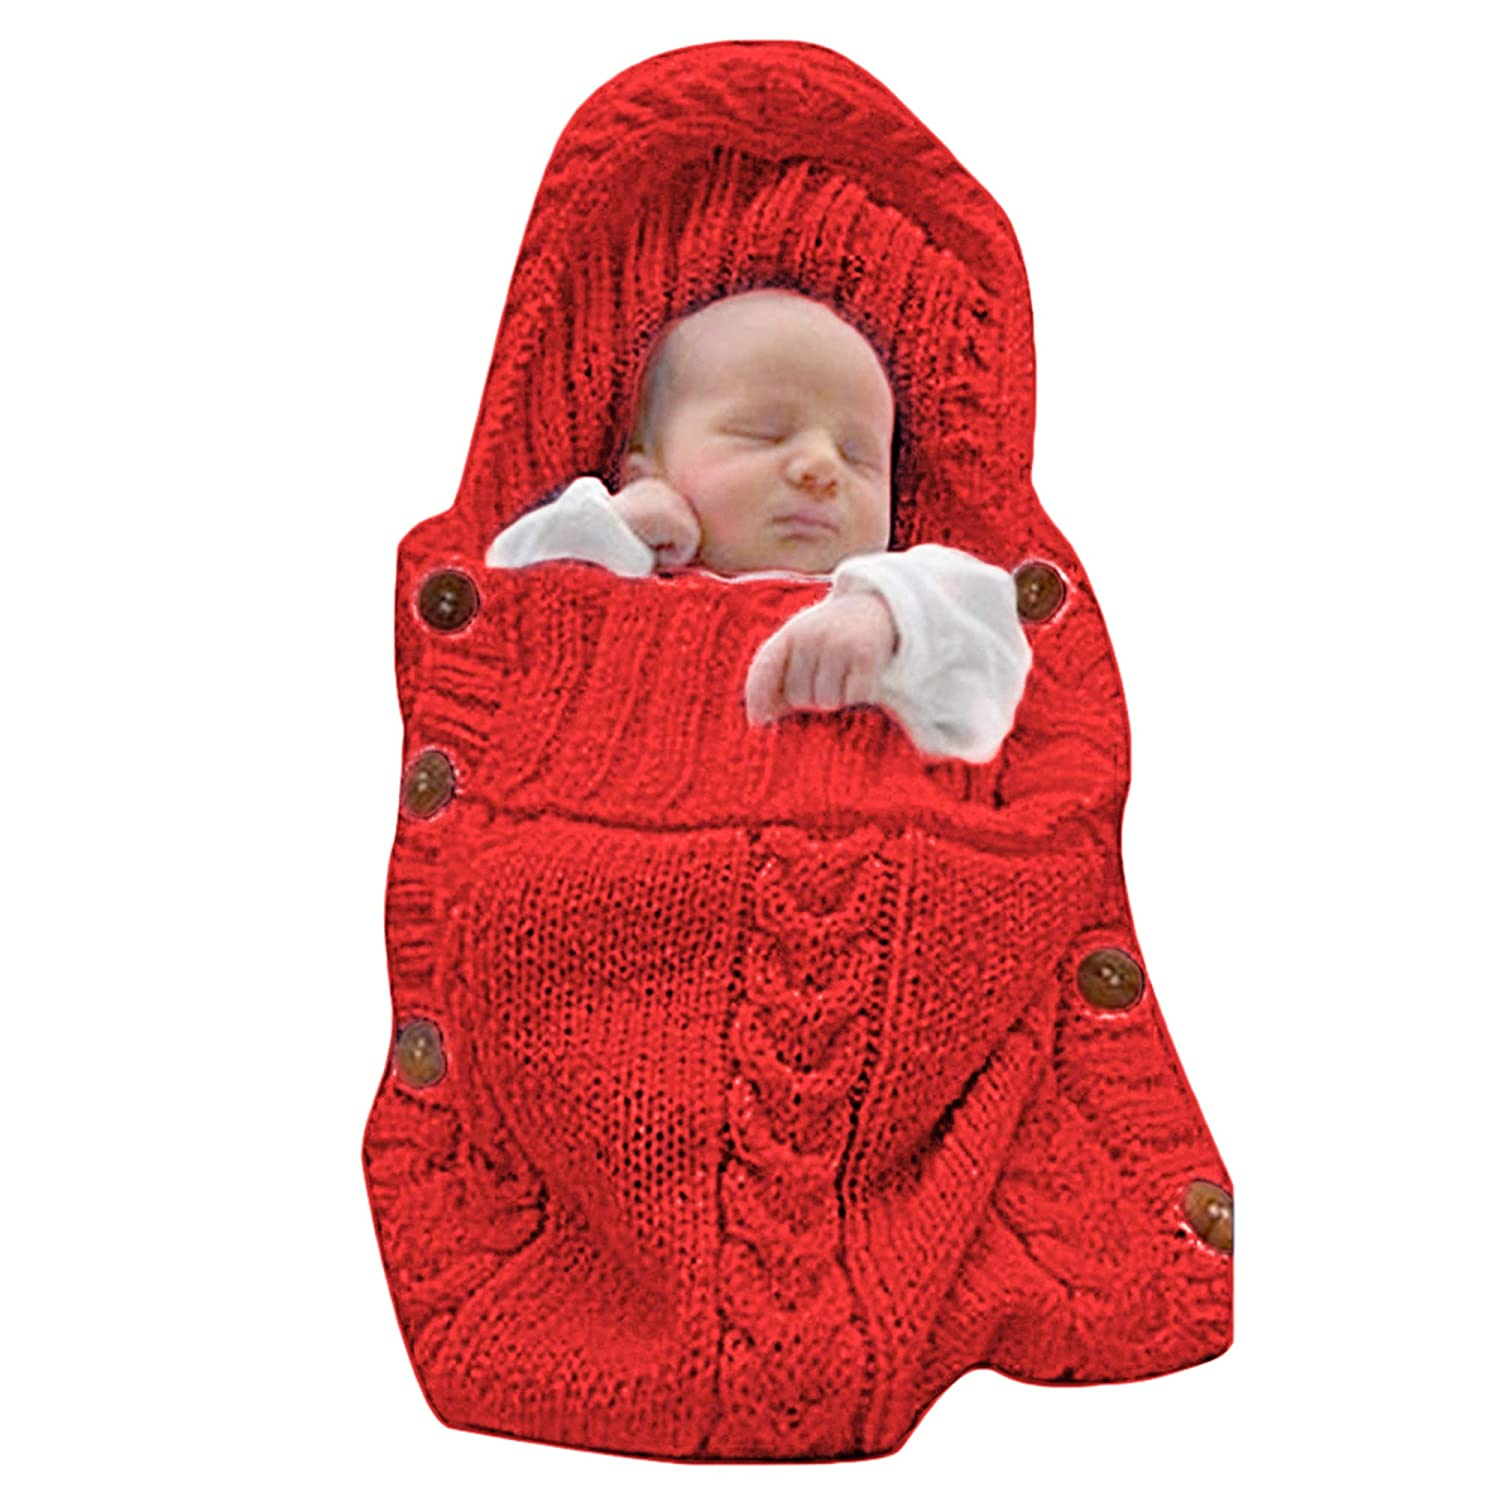 Newborn Infant Baby Knitted Sleeping Bags Sleep Sack Hat Photography Accessories